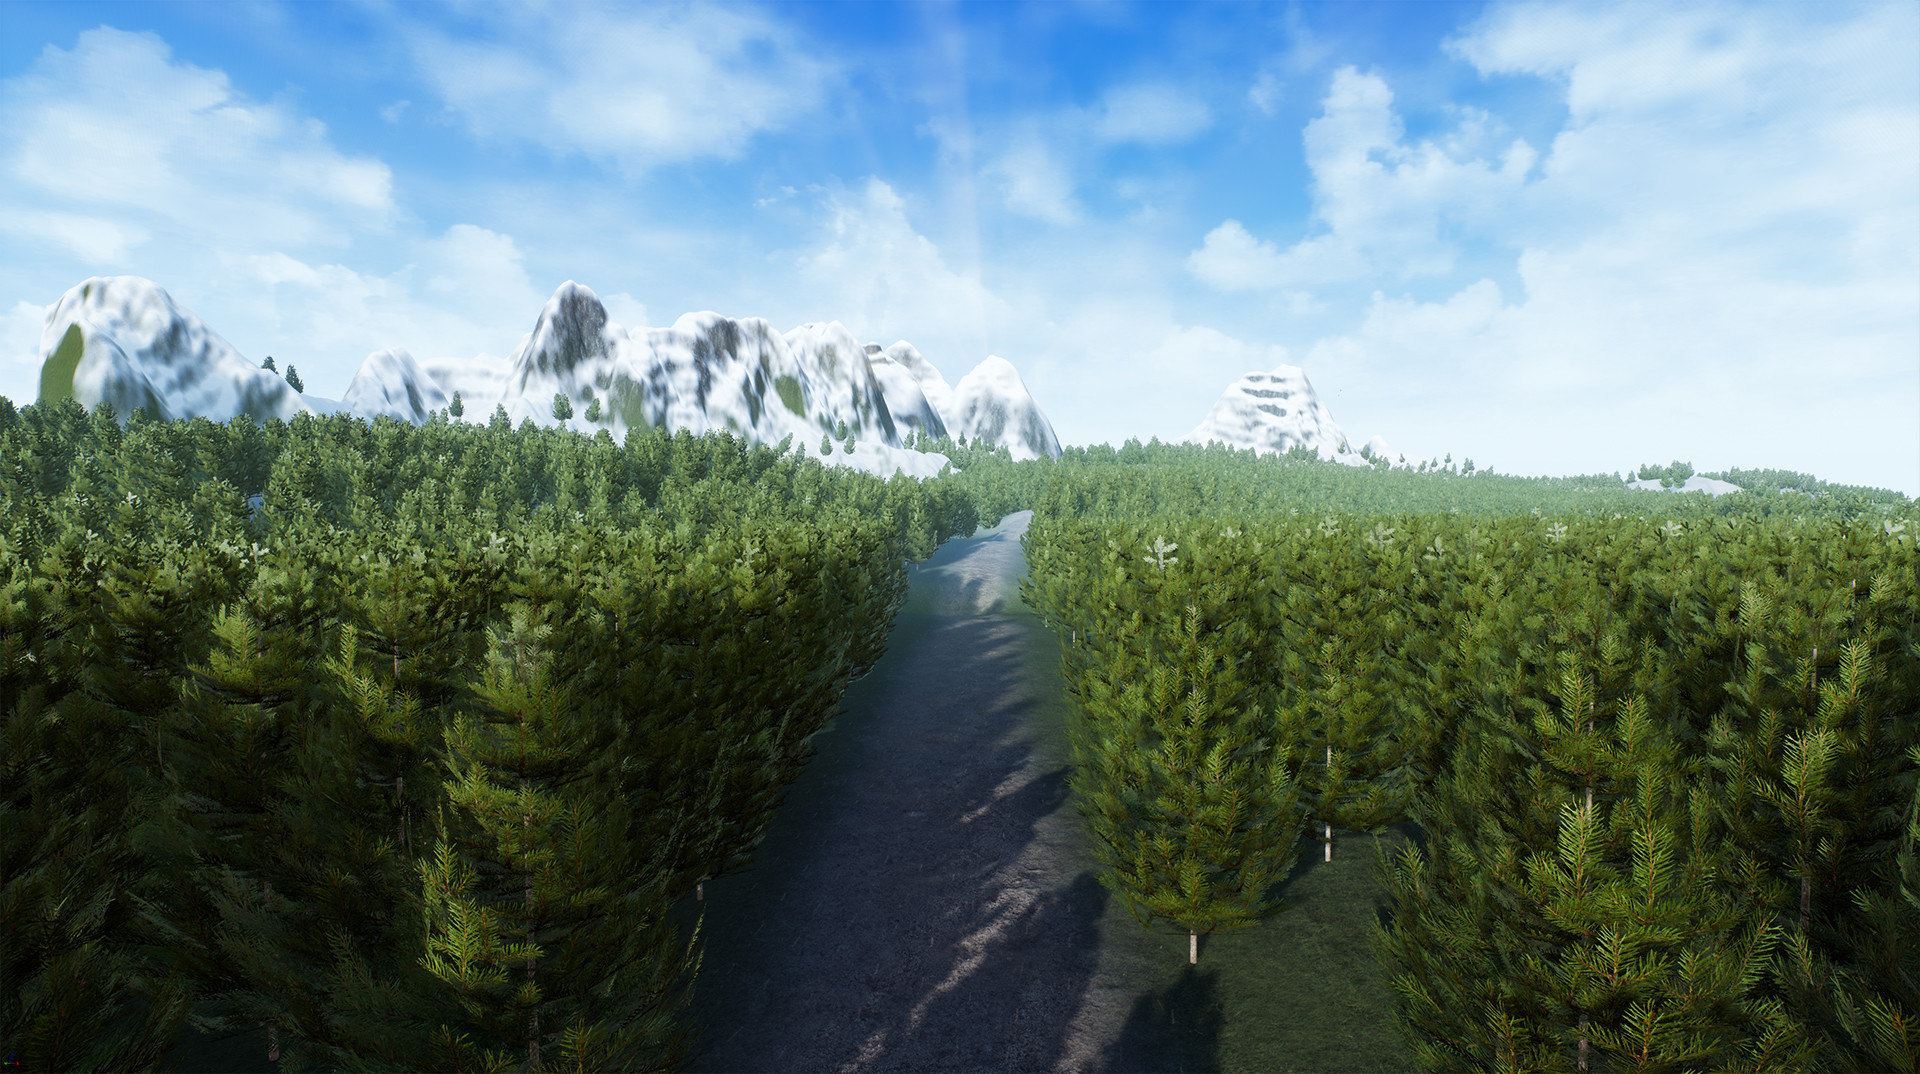 Close up of the third terrain. This image also shows the road feature and it's interaction with the foliage tool.